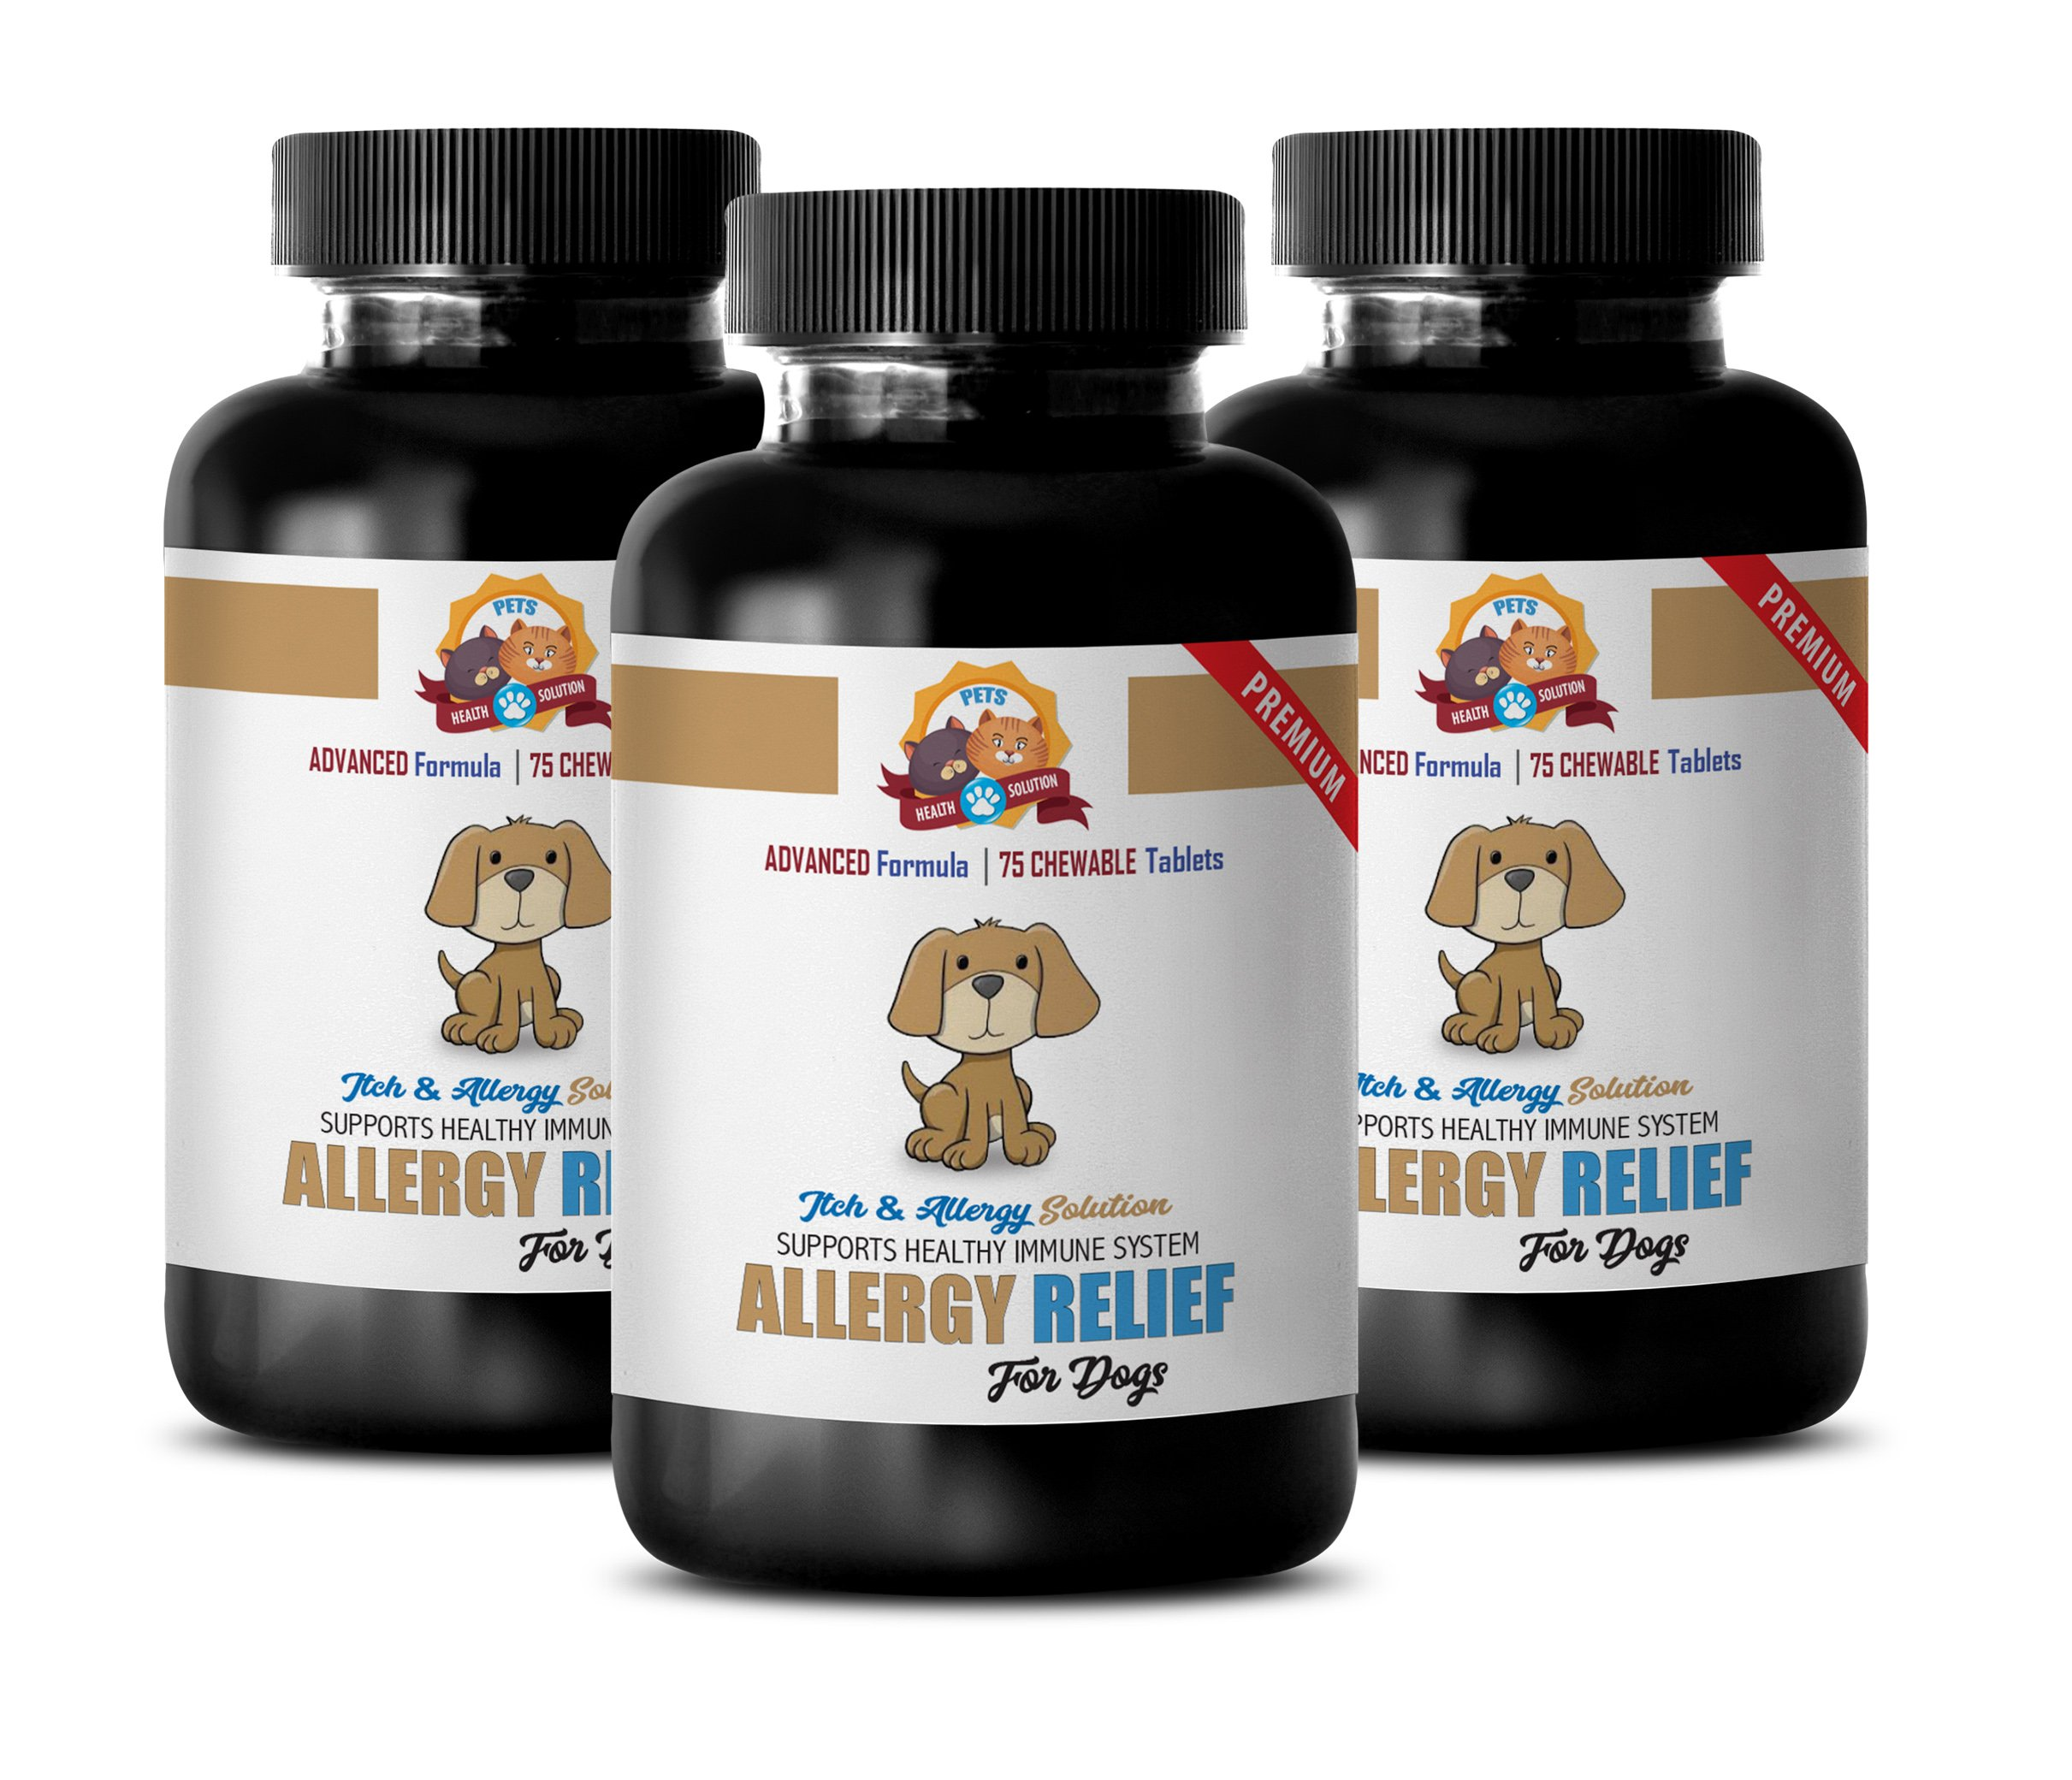 dog scratching relief - PREMIUM DOG ALLERGY RELIEF - ITCH AND IMMUNE SYSTEM SOLUTION - TREATS - burdock for dogs - 225 Treats (3 Bottle) by PETS HEALTH SOLUTION